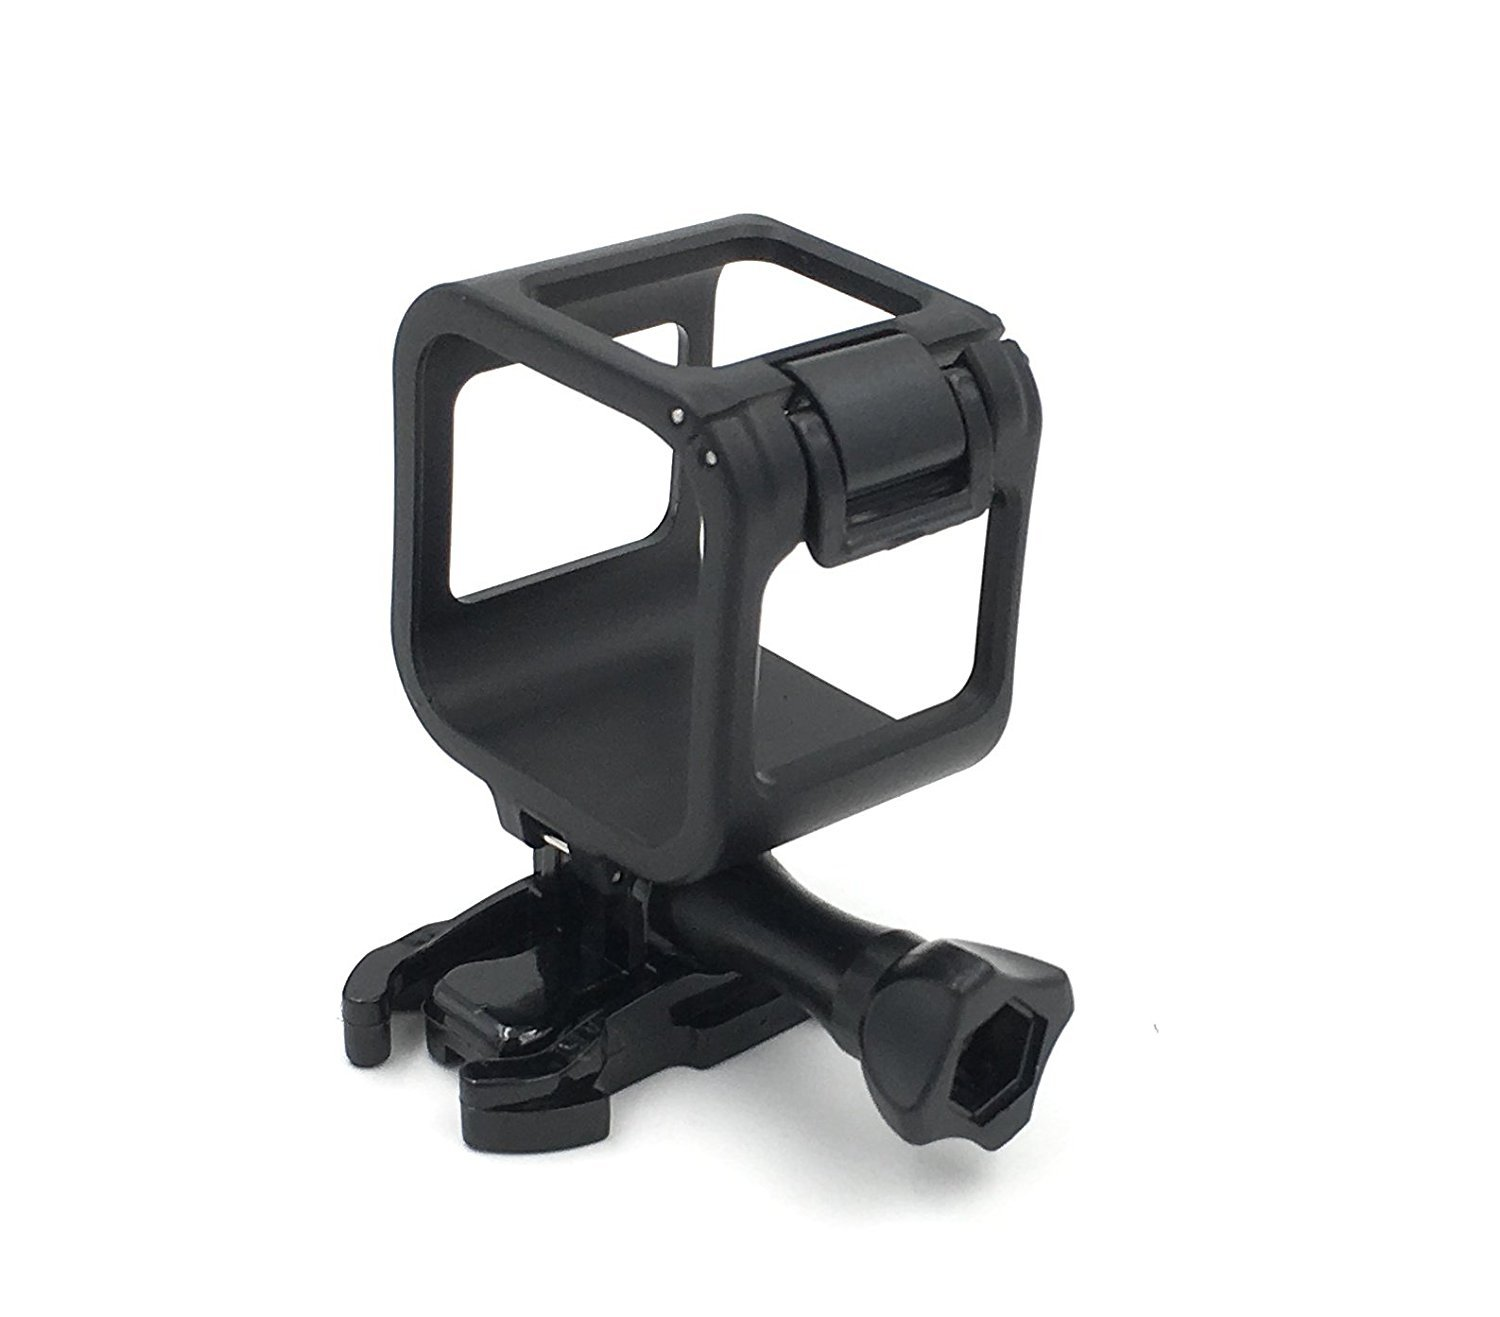 Standard Protective Frame Cover Housing for GoPro Hero 4 Session Hero 5 Session Housing Sports Bicycle Handlebar Mount Housing Case Accessories